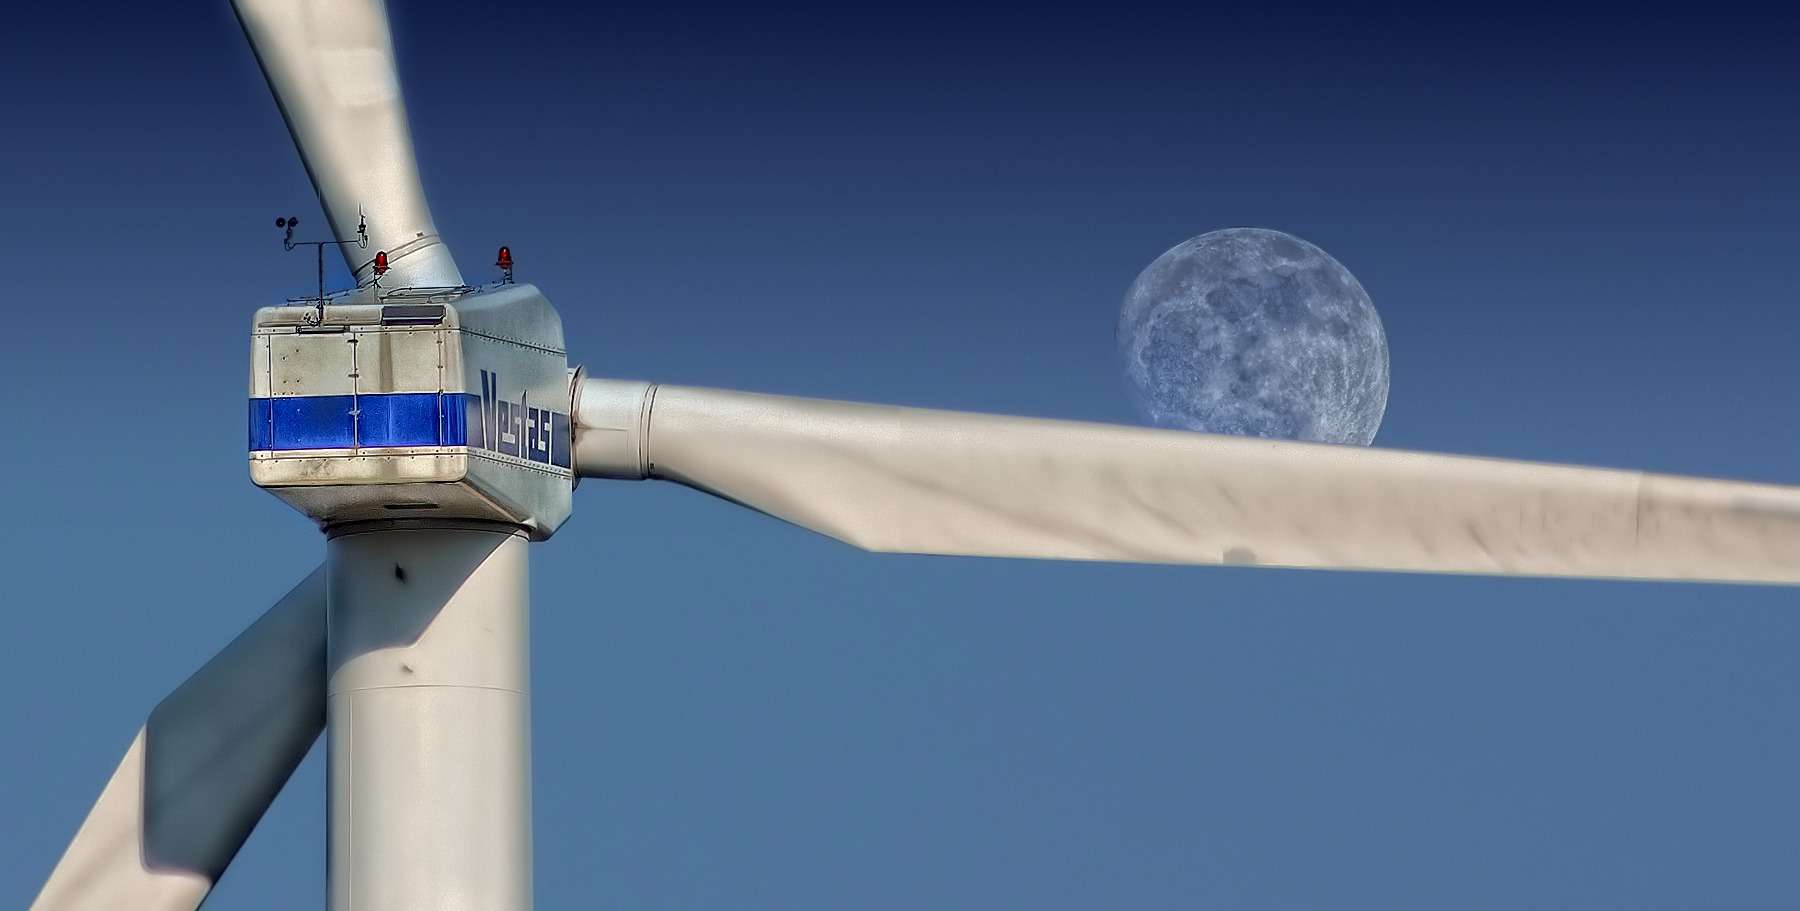 pinwheel-wind-power-enerie-environmental-technology (1)